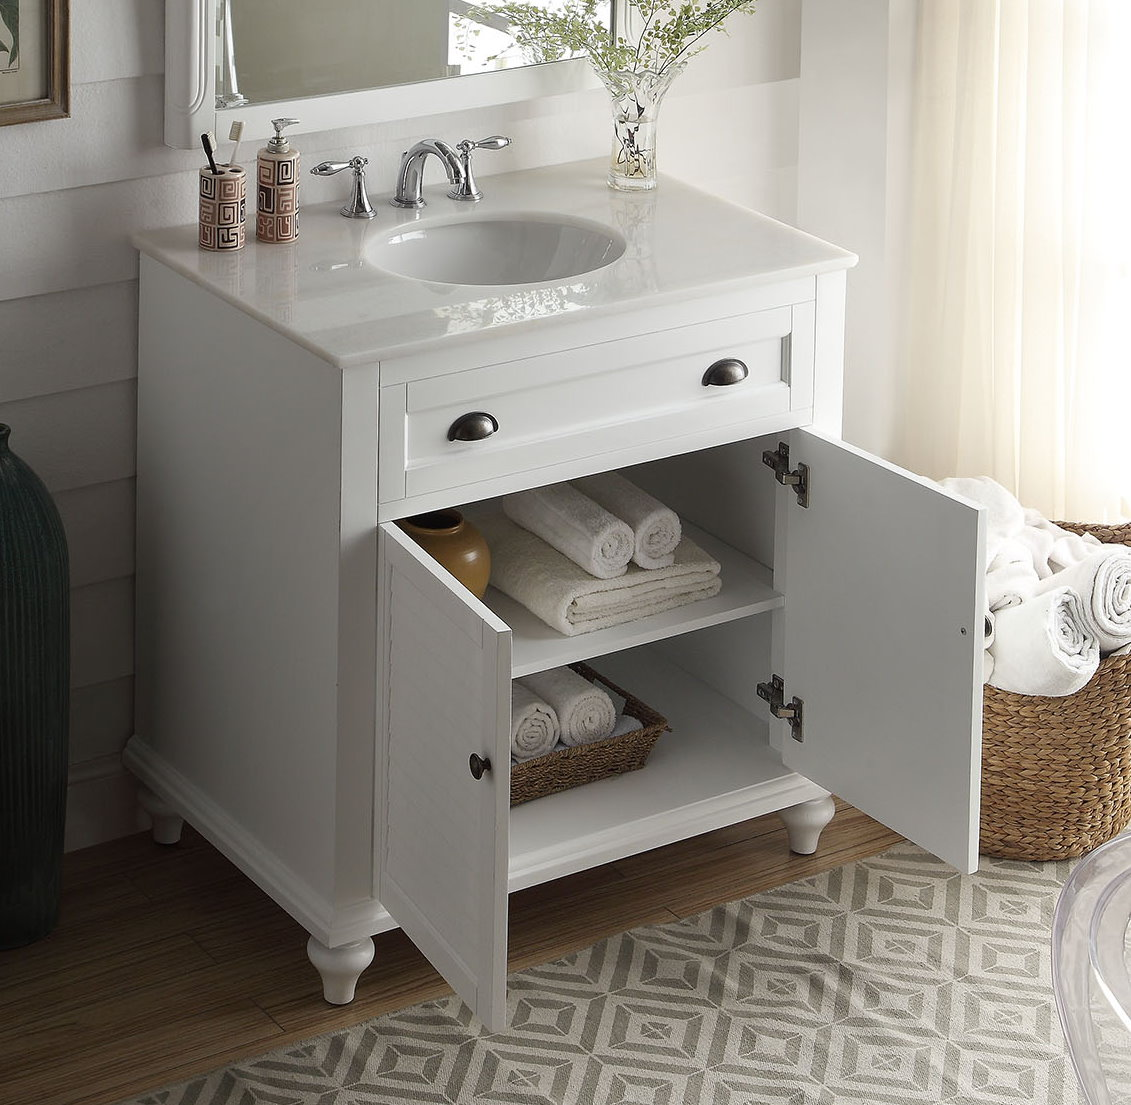 34 Inch Bathroom Vanity Beach Style White Color 34 Wx22 Dx35 H Cgd28867w34